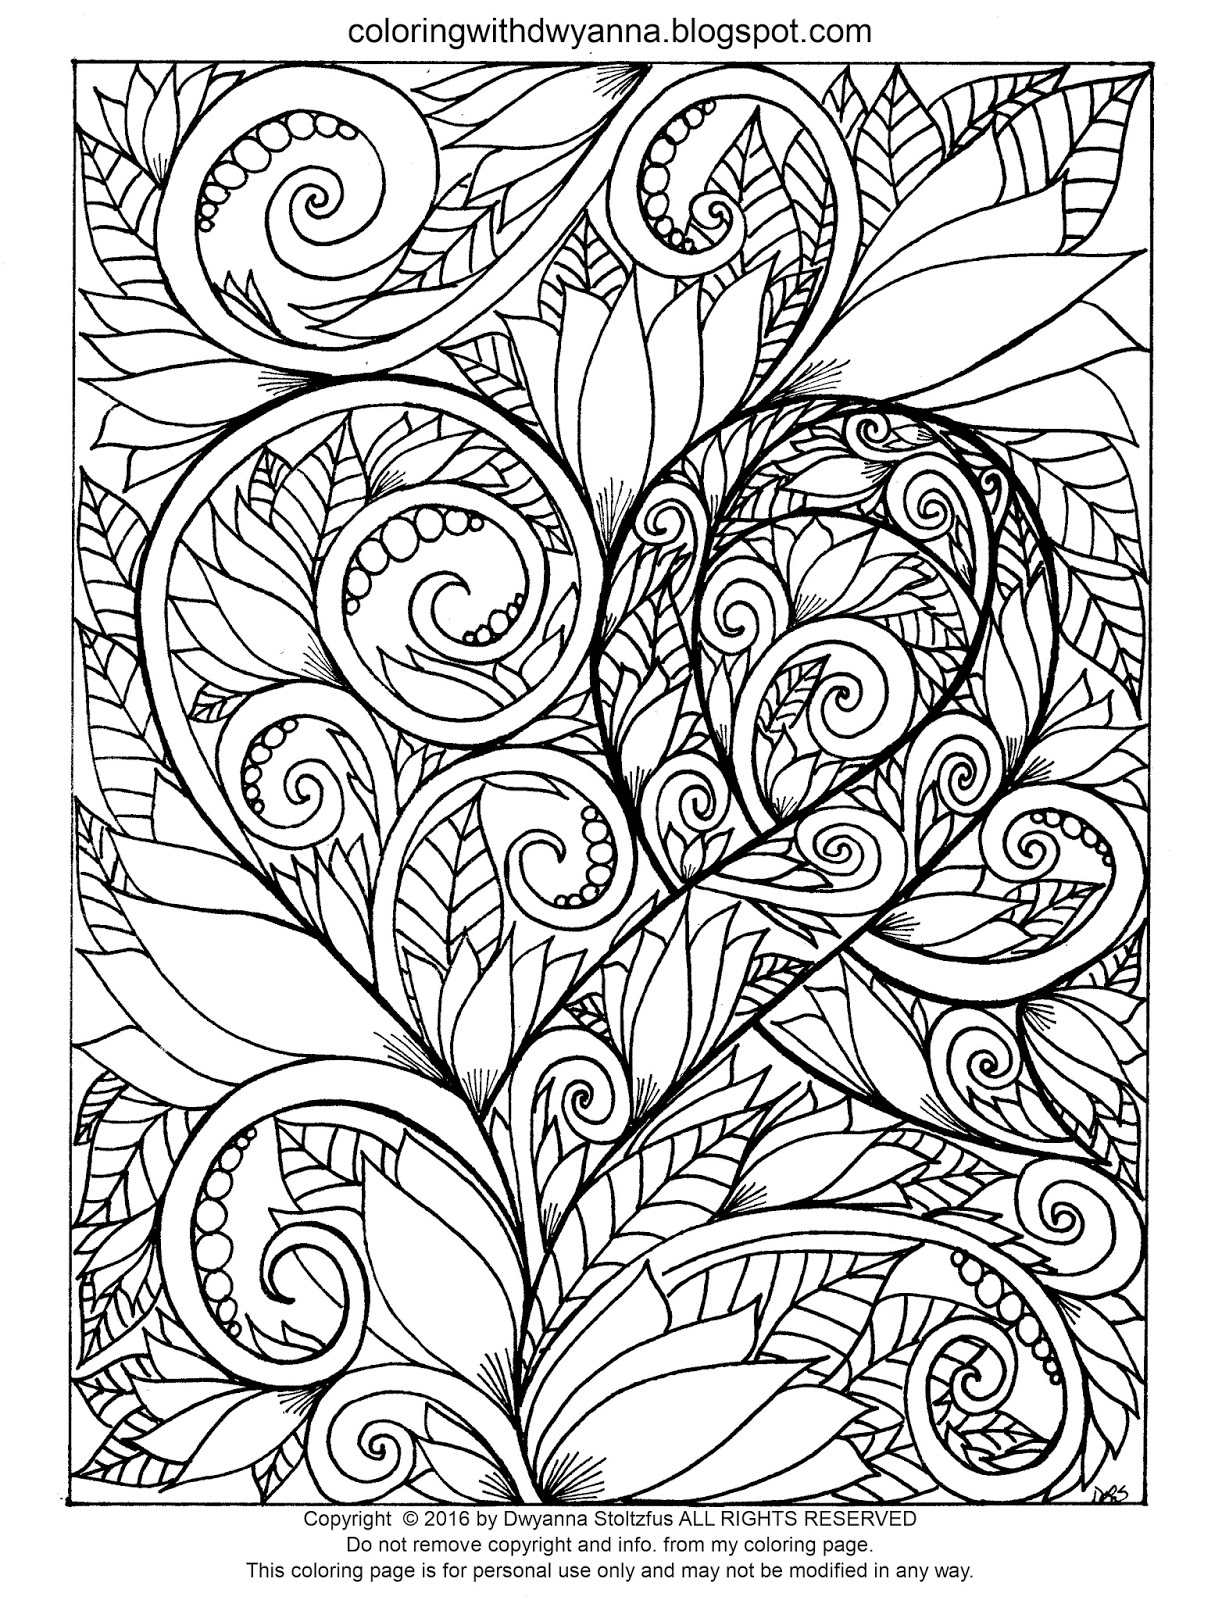 The Free Coloring Pages I Post On This Website MAY NOT BE SHARED